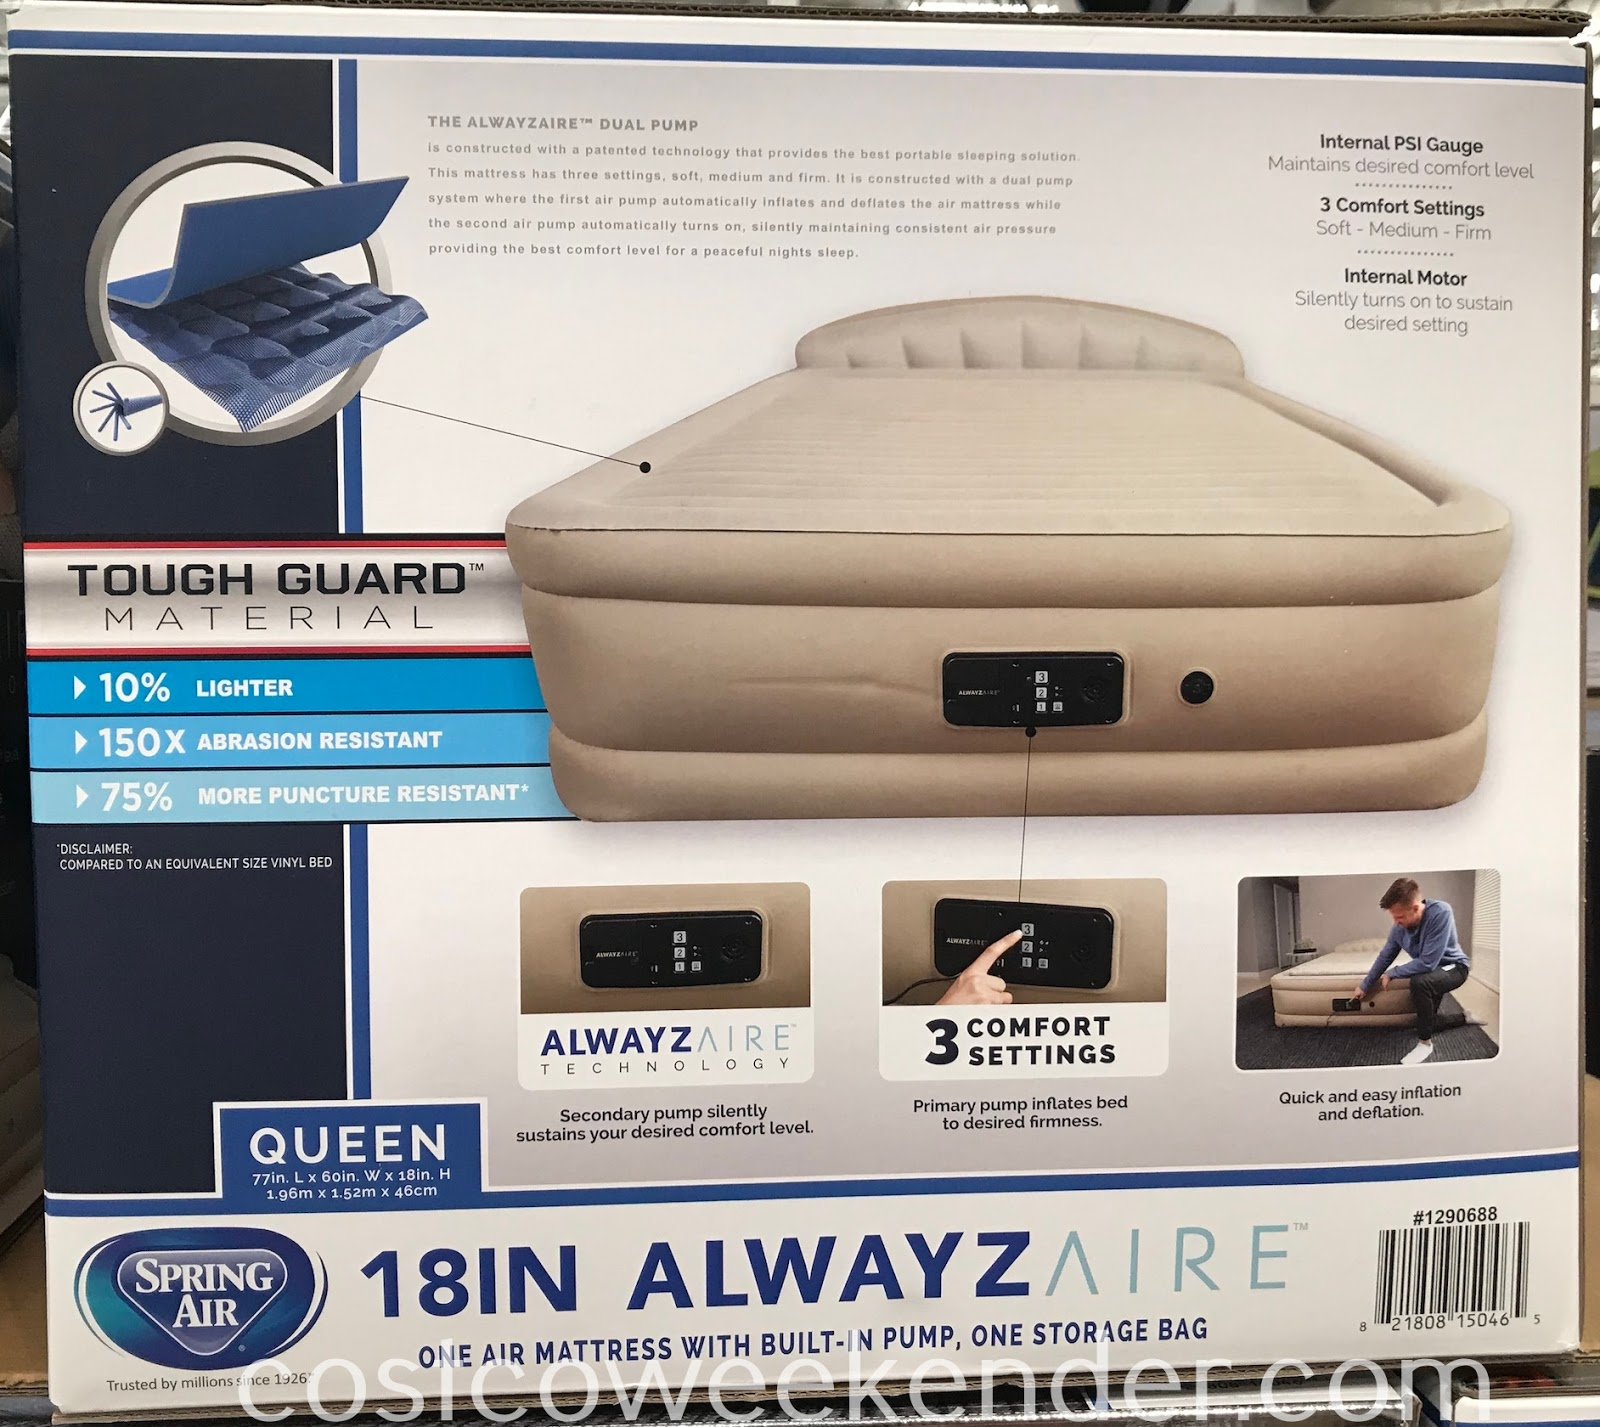 Ensure overnight guests sleep well with the Spring Air Queen AlwaysAire Airbed